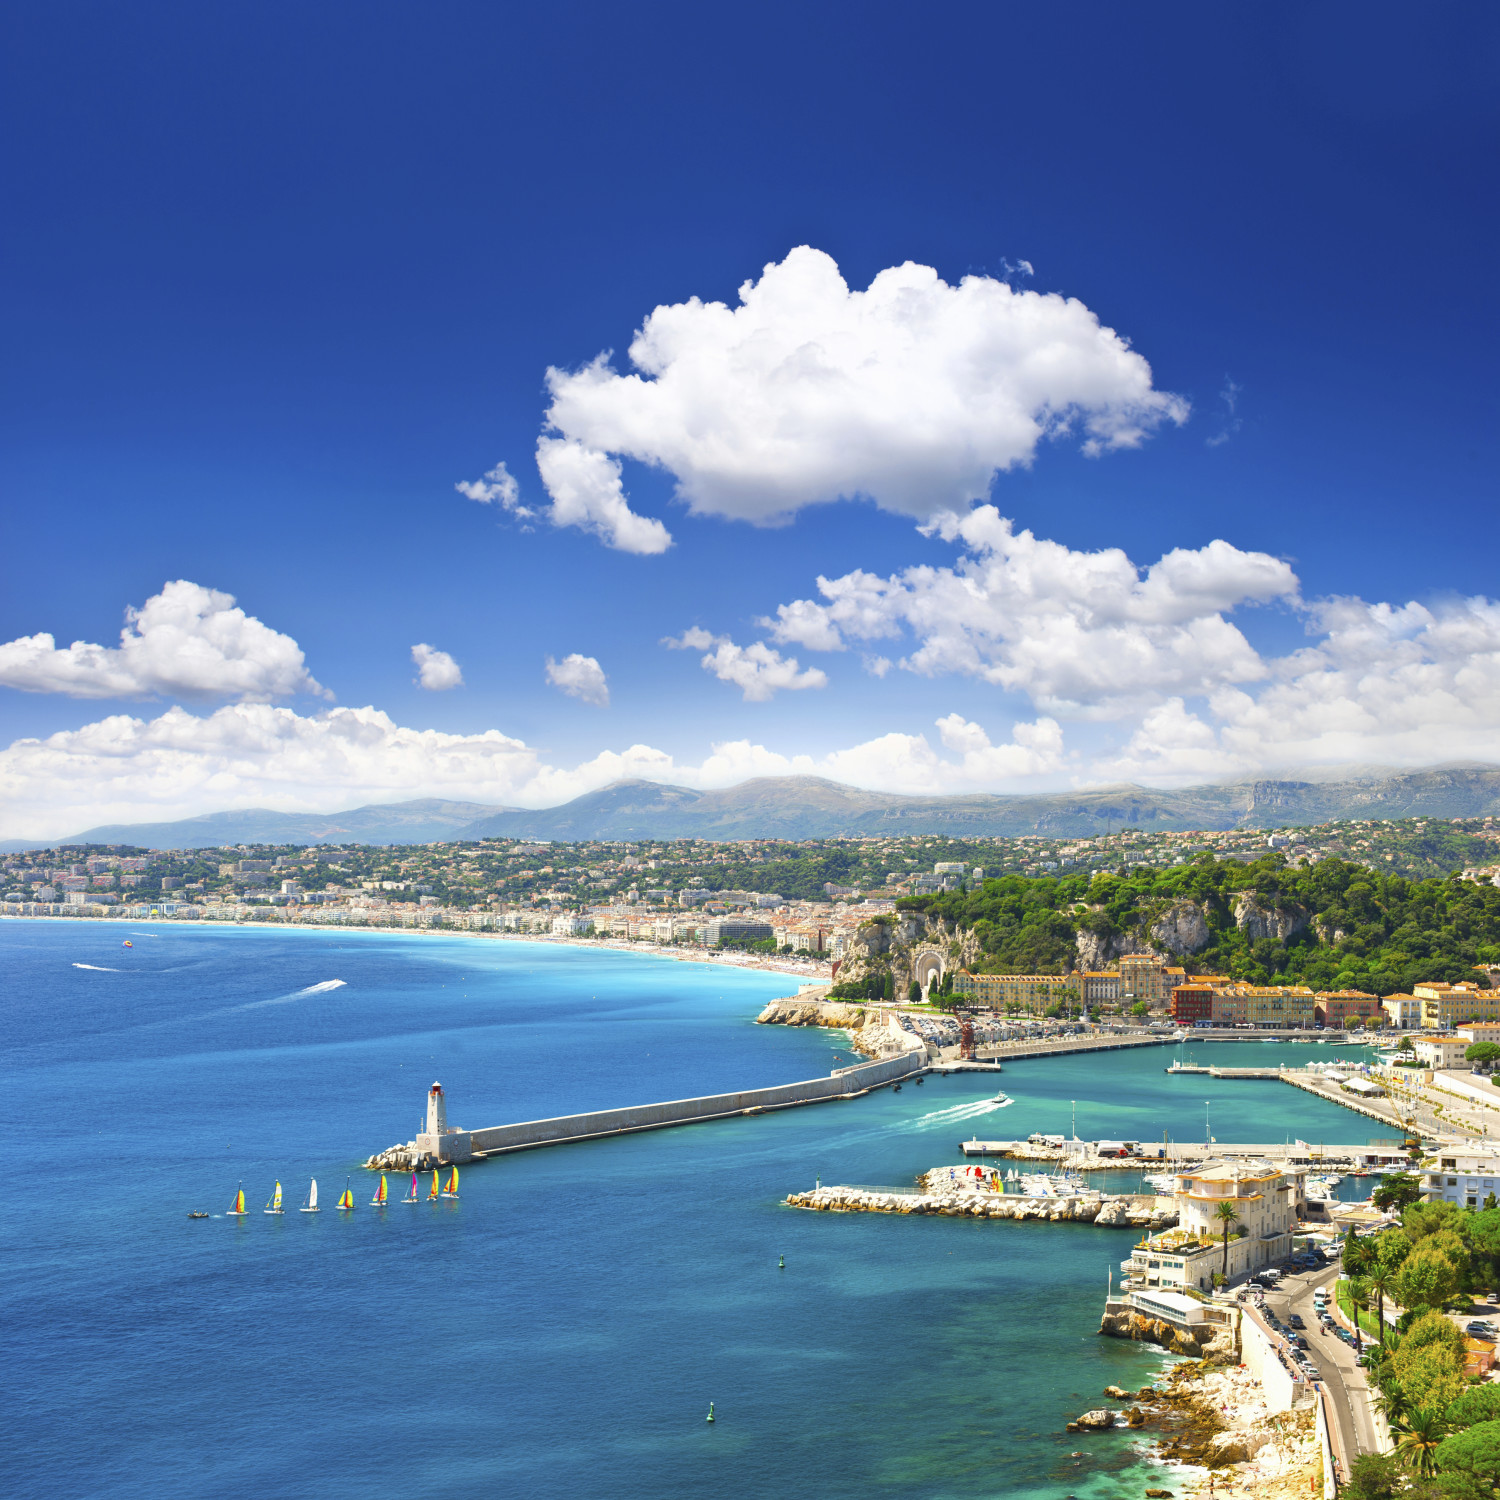 Check out the beach in Nice - just minutes away from the hostel